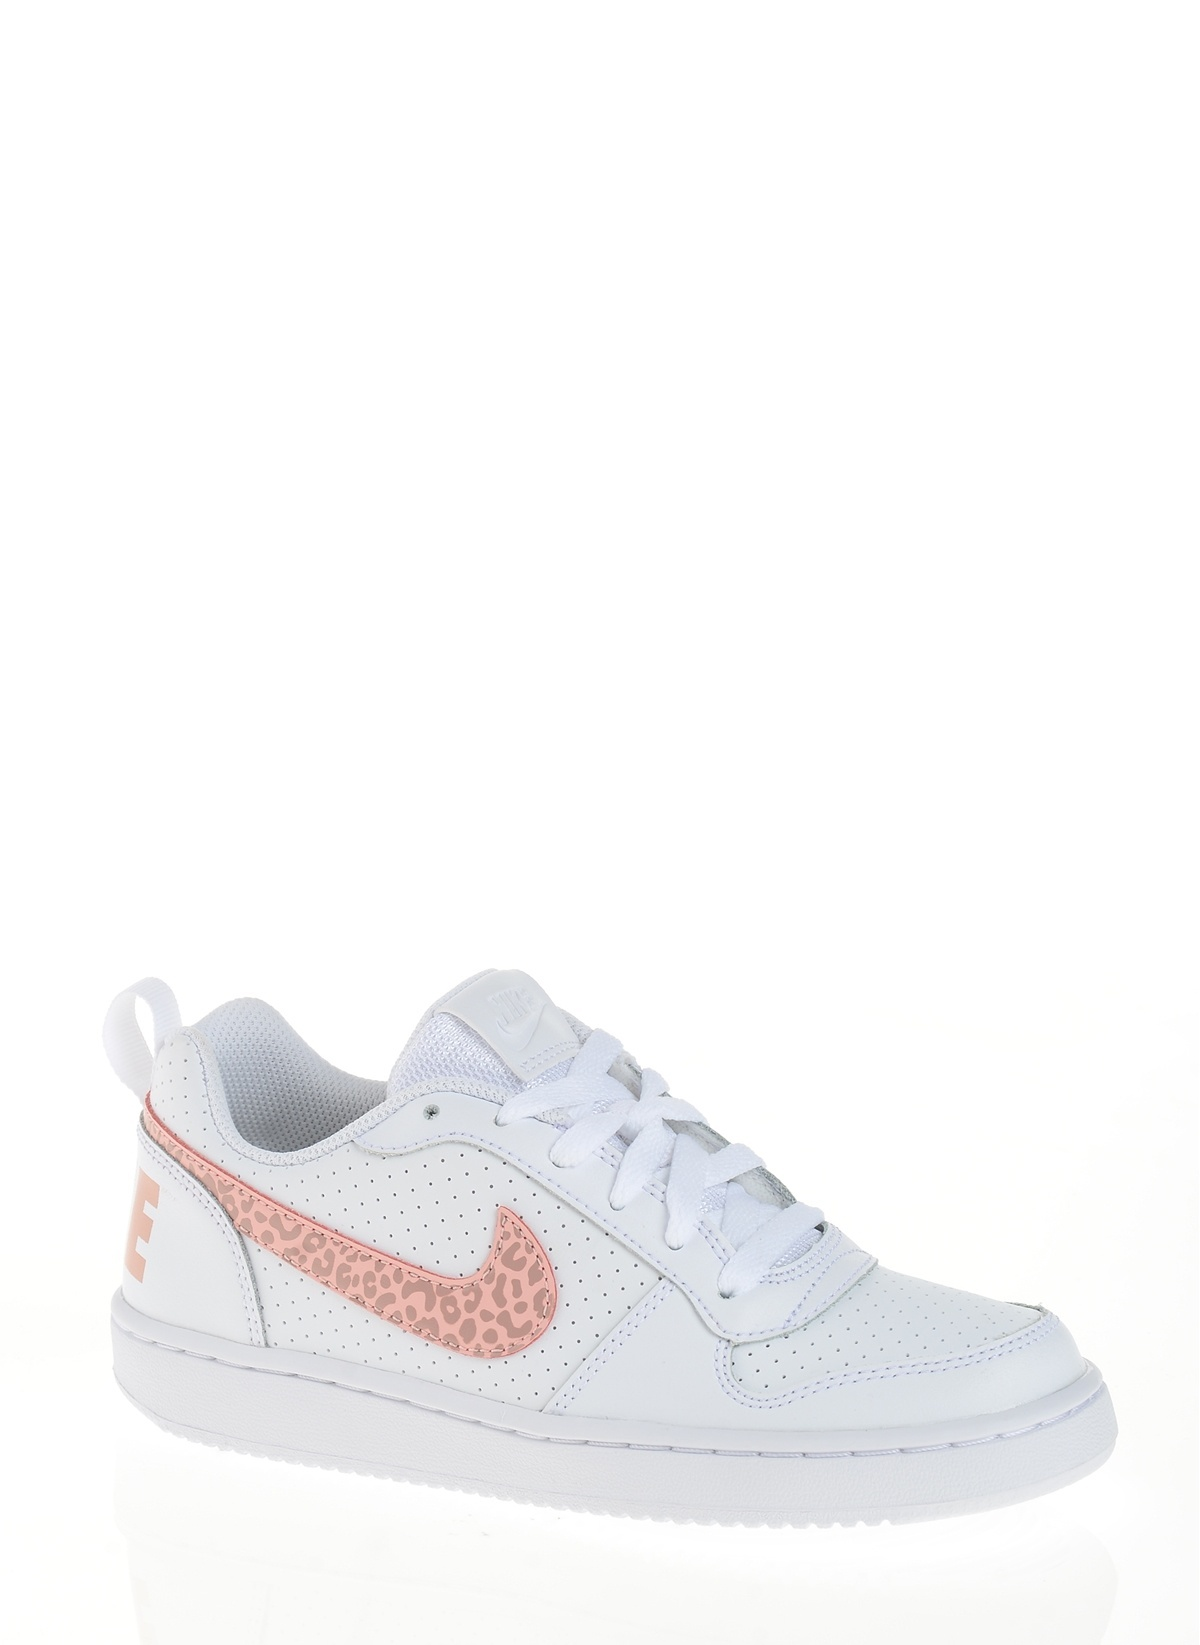 Compatible con Heredero triste  Nike 845104-101 Nike Court Borough Low (Gs) - 21326512 | Morhipo